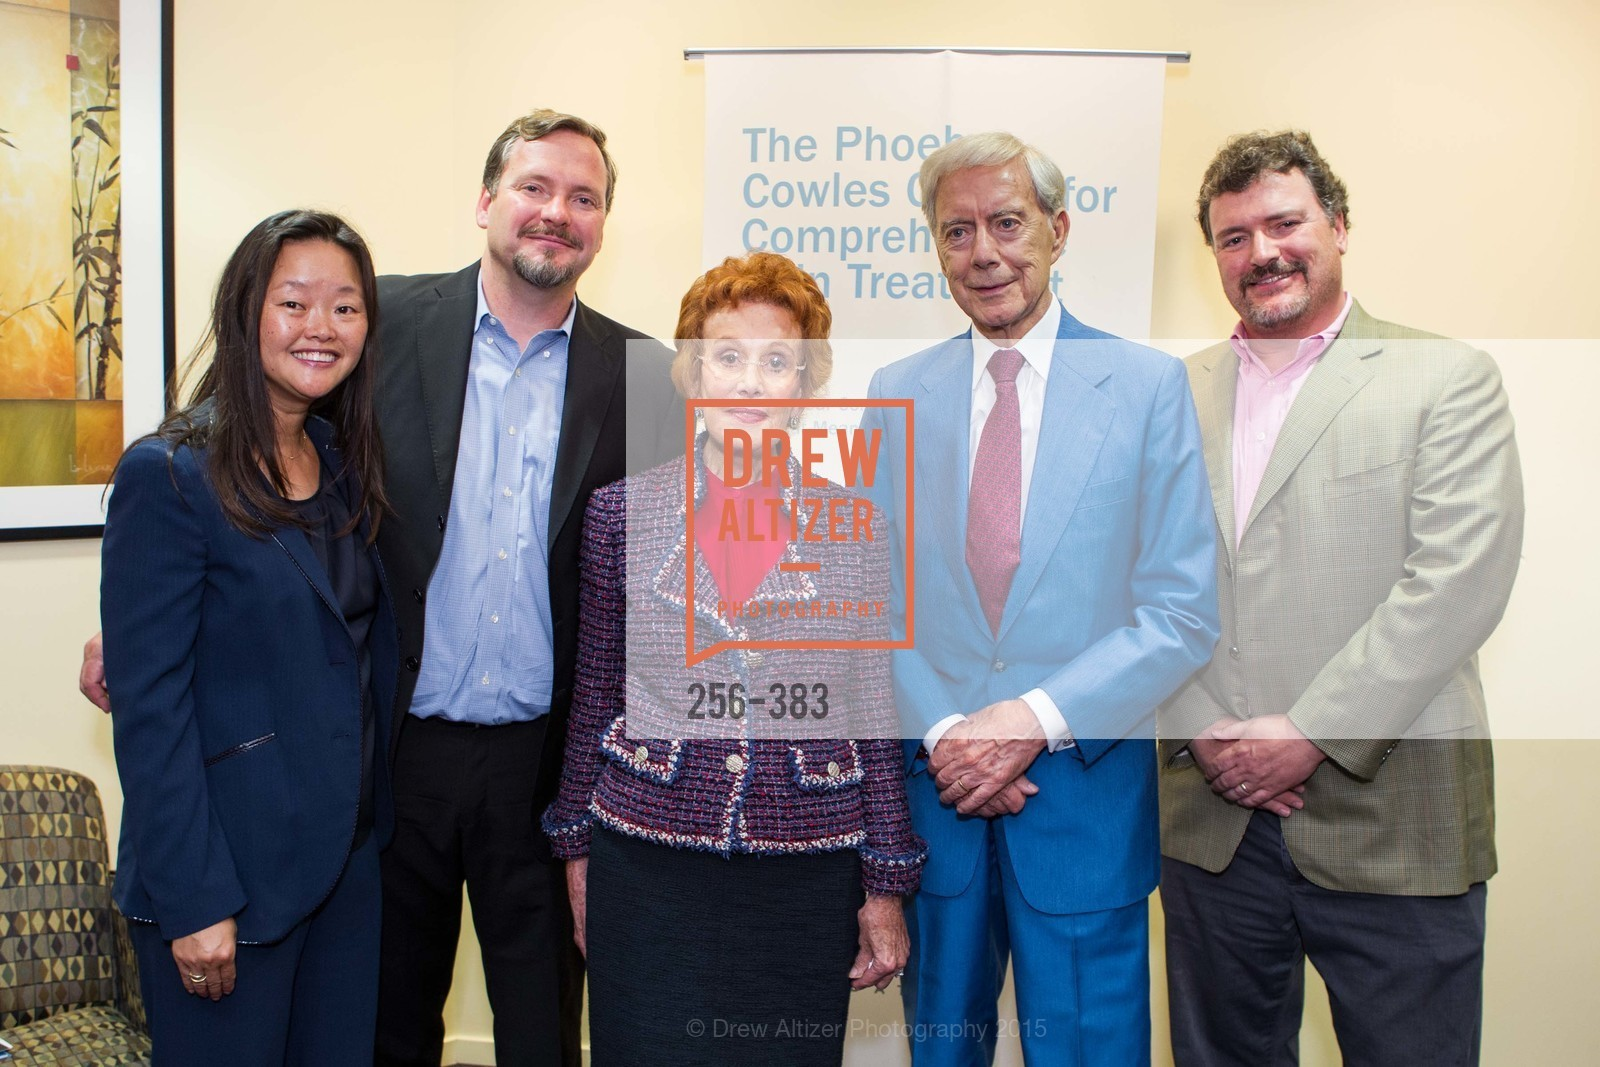 Jane Yao, Michael Gibson, Phoebe Cowles, Robert Girard, Mark Gibson, Groundbreaking ceremony for the Phoebe Cowles Center for Comprehensive Pain Treatment, Phoebe Cowles Center for Comprehensive Pain Treatment. 1199 Bush Street, October 15th, 2015,Drew Altizer, Drew Altizer Photography, full-service agency, private events, San Francisco photographer, photographer california